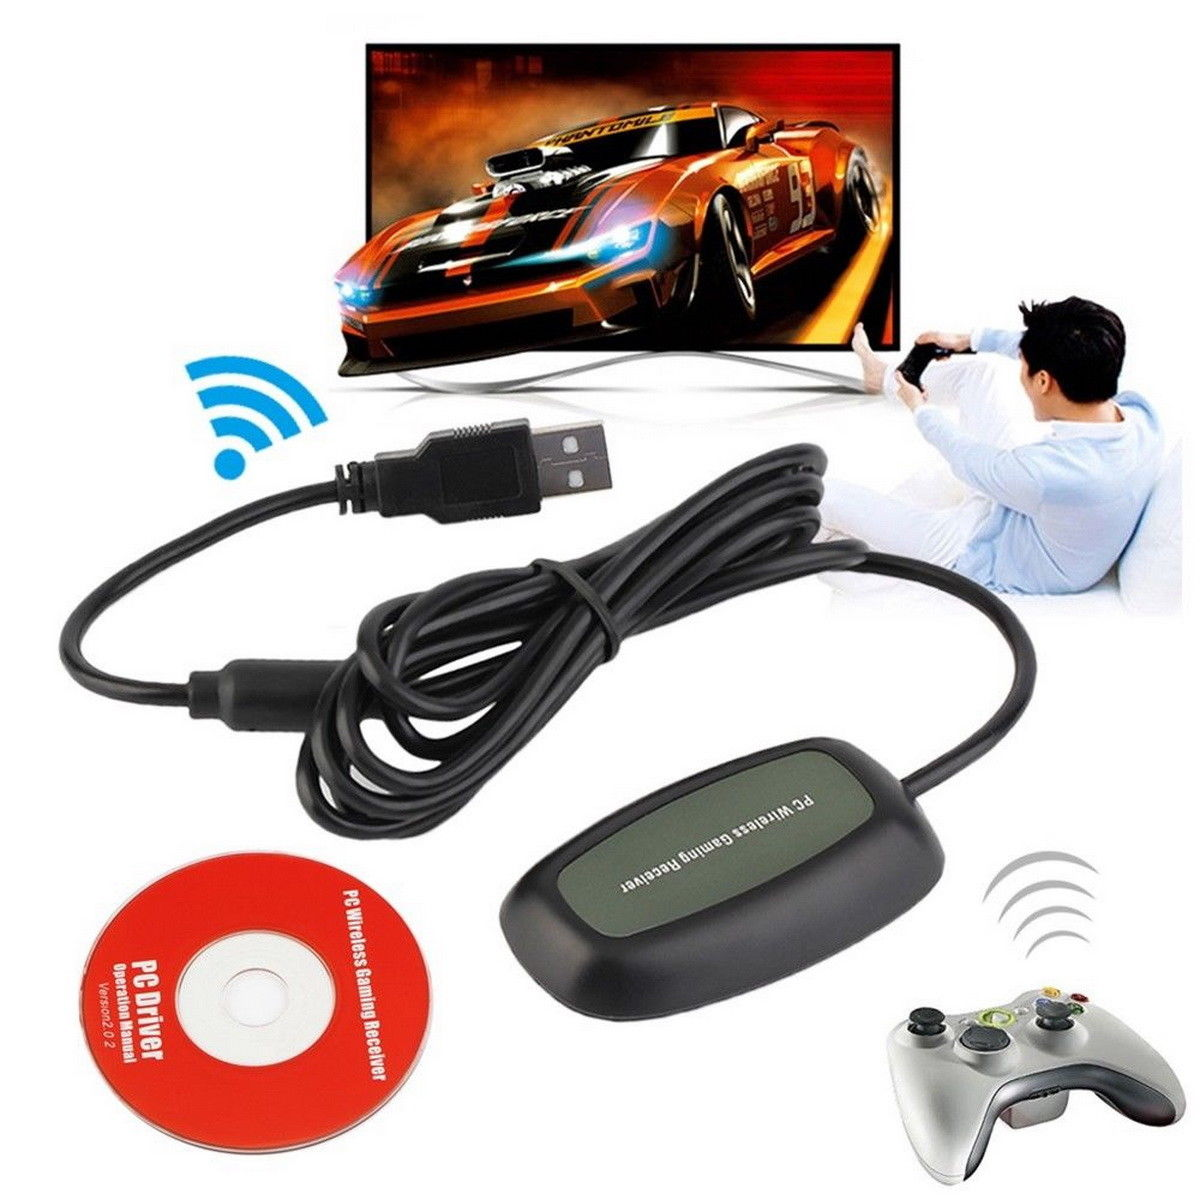 XBOX 360 Controller Wireless Gaming Receiver Adapter for PC